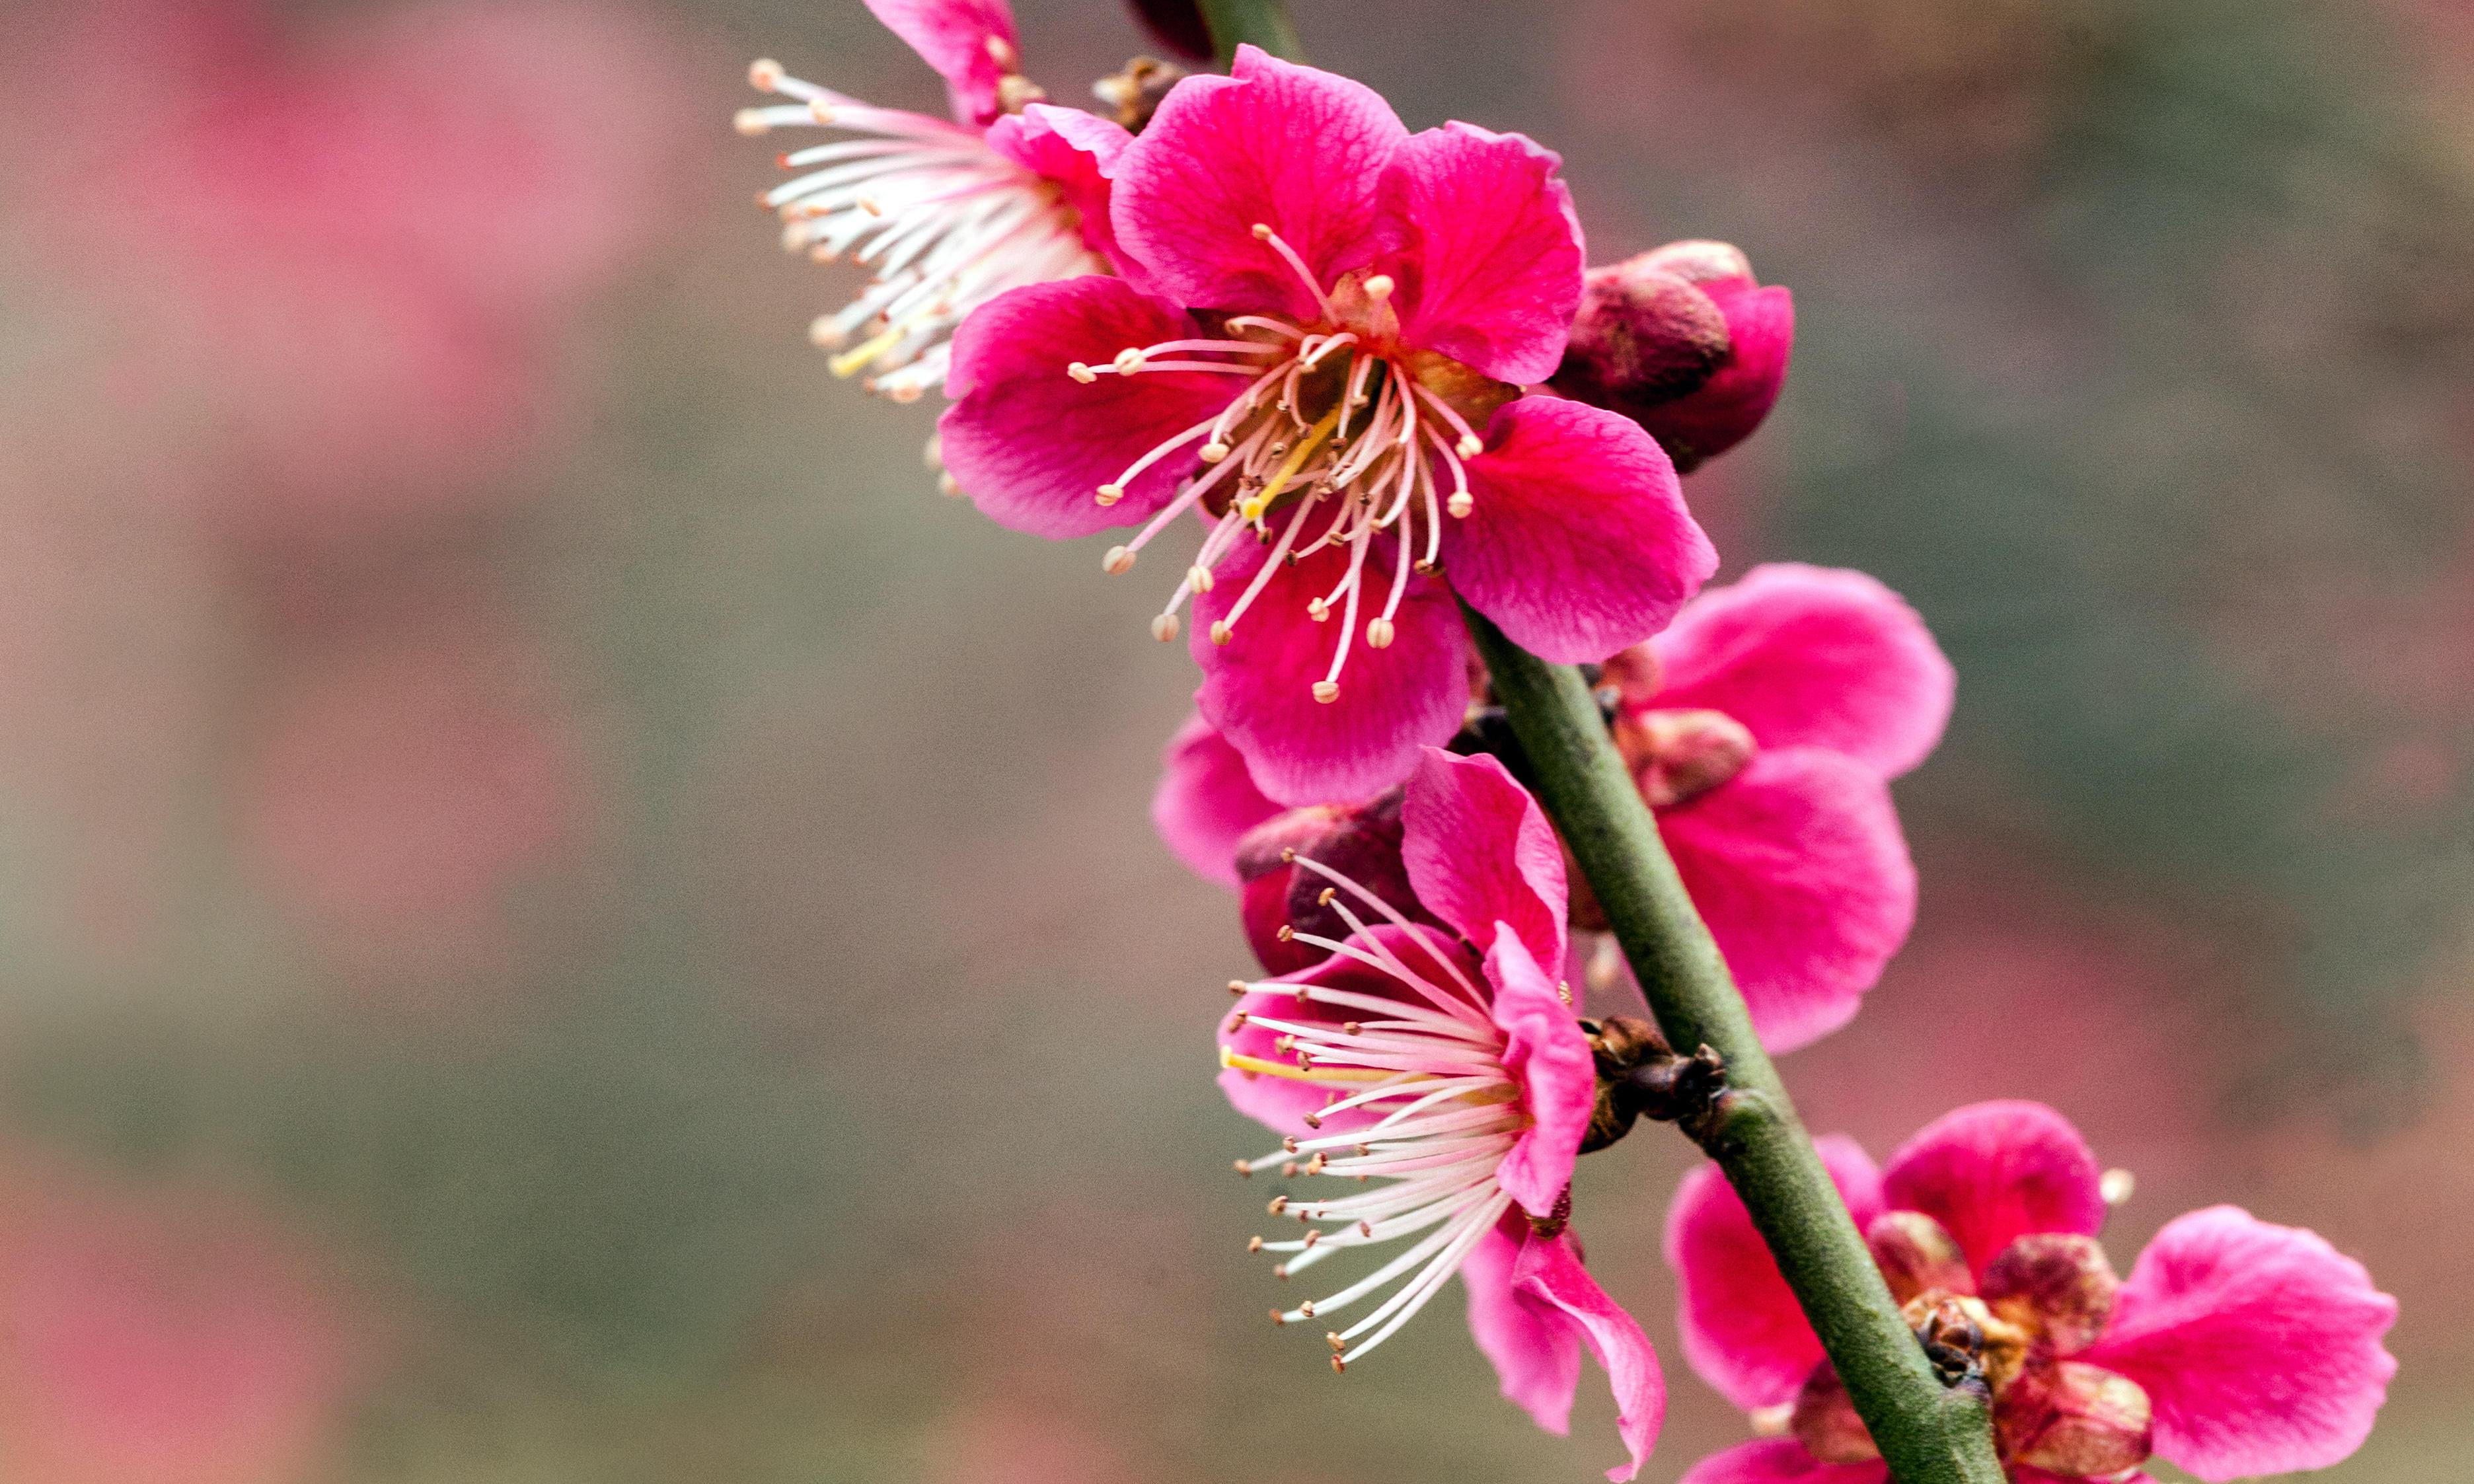 Gardening tips: plant a Japanese apricot